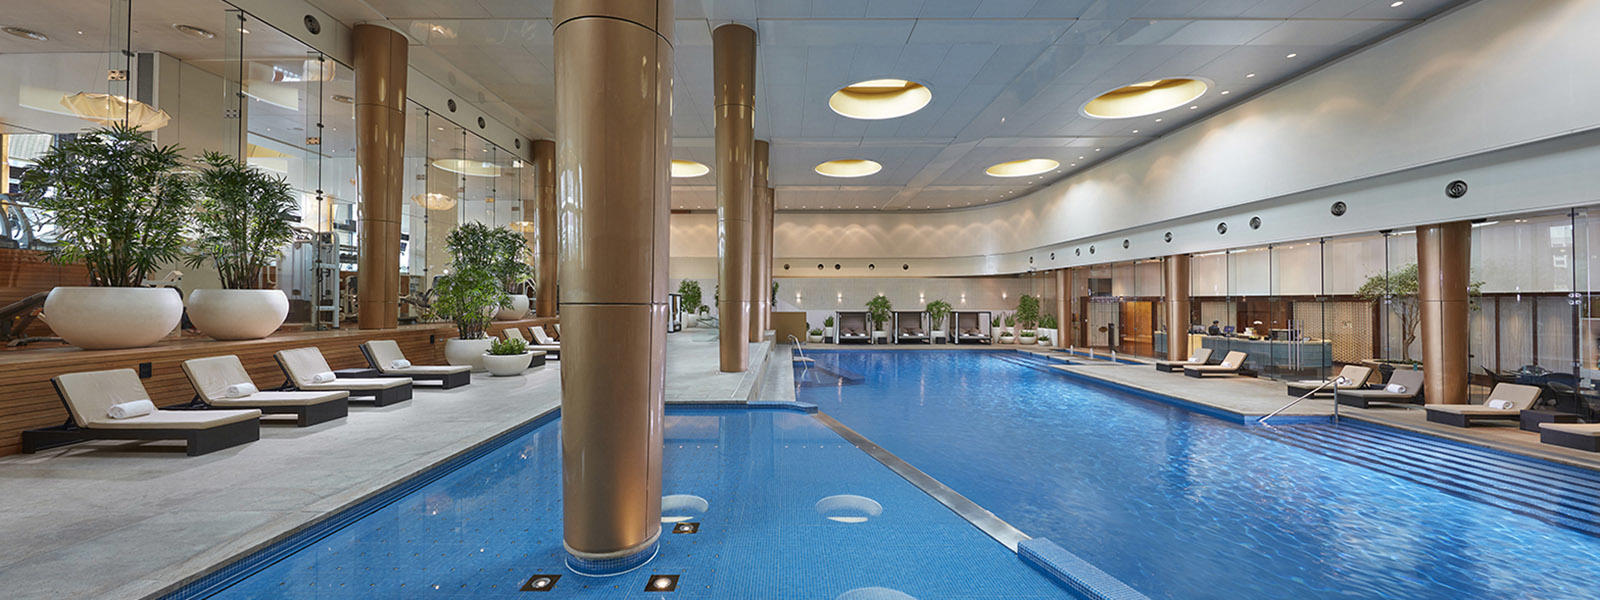 Swimming Lessons at Crown Hotel Melbourne